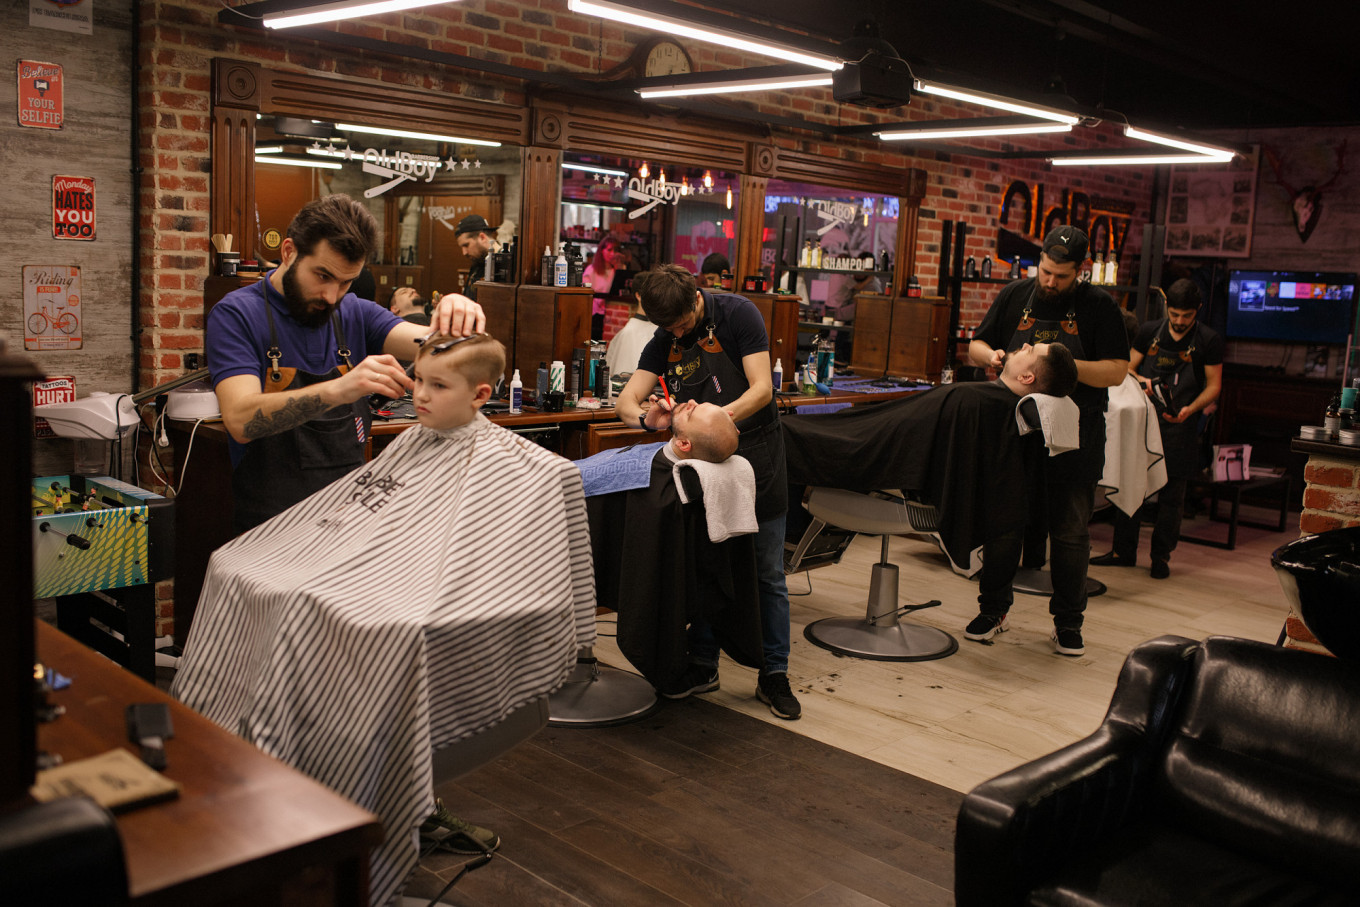 Dmitri Porochkin, an entrepreneur who owns four Old Boy barbershop franchises, says business is down around one-quarter already. He also runs two coffee shops, where trade is down 50%. He wants the government to set up a fund to help small business owners make rent payments. Credit: . Dmitri Porochkin